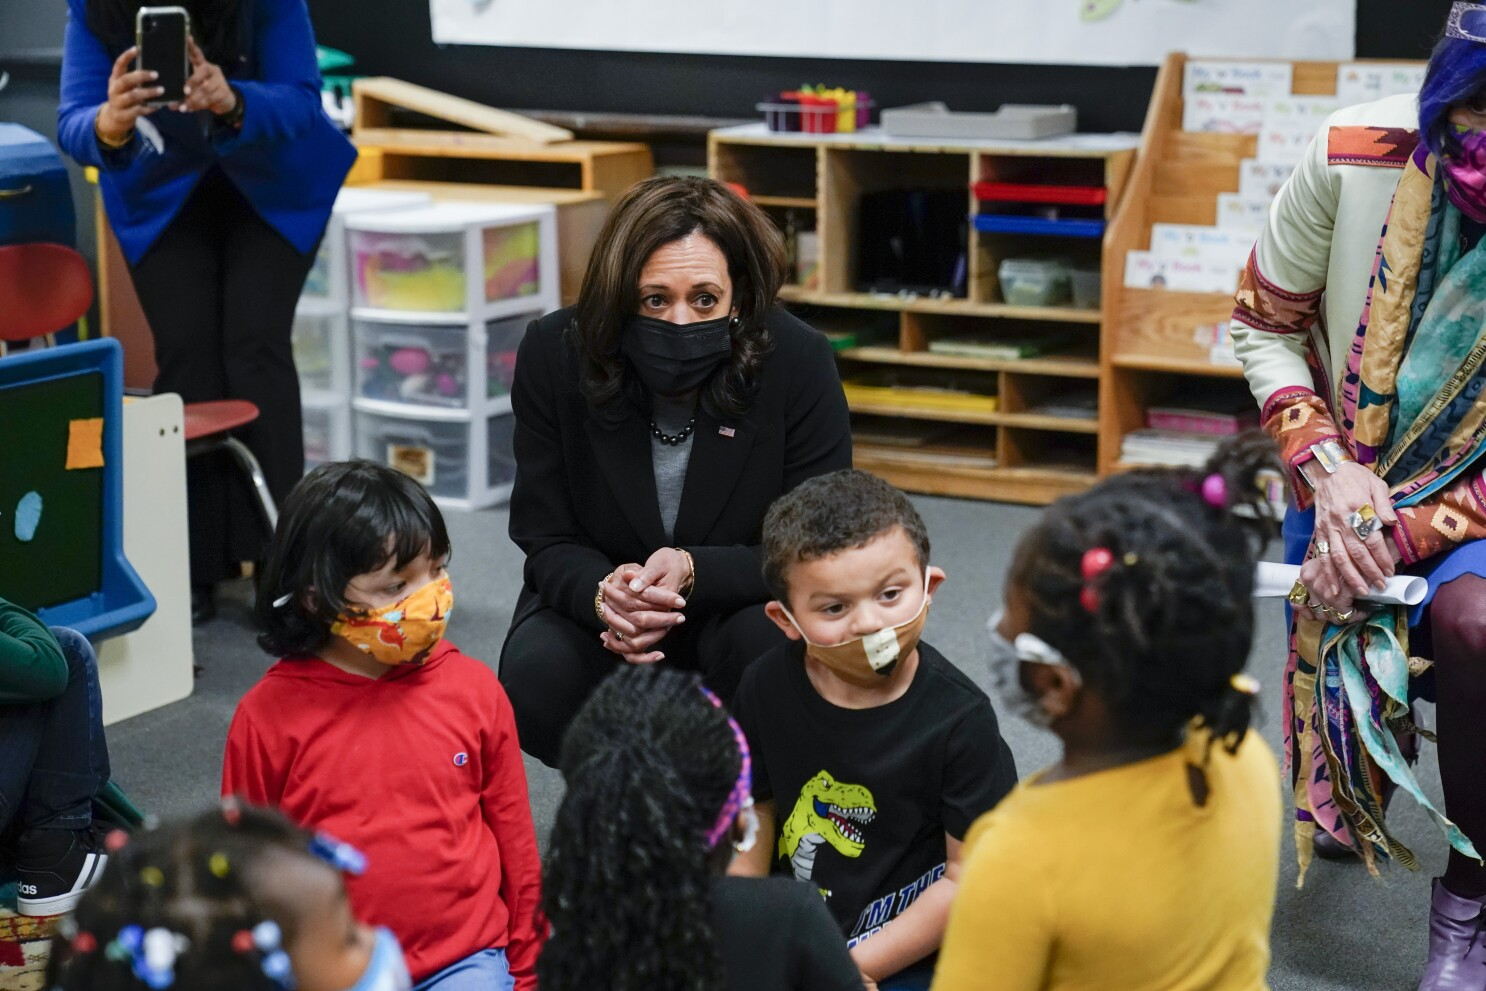 COVID relief plan to provide families monthly child payments - Los Angeles  Times